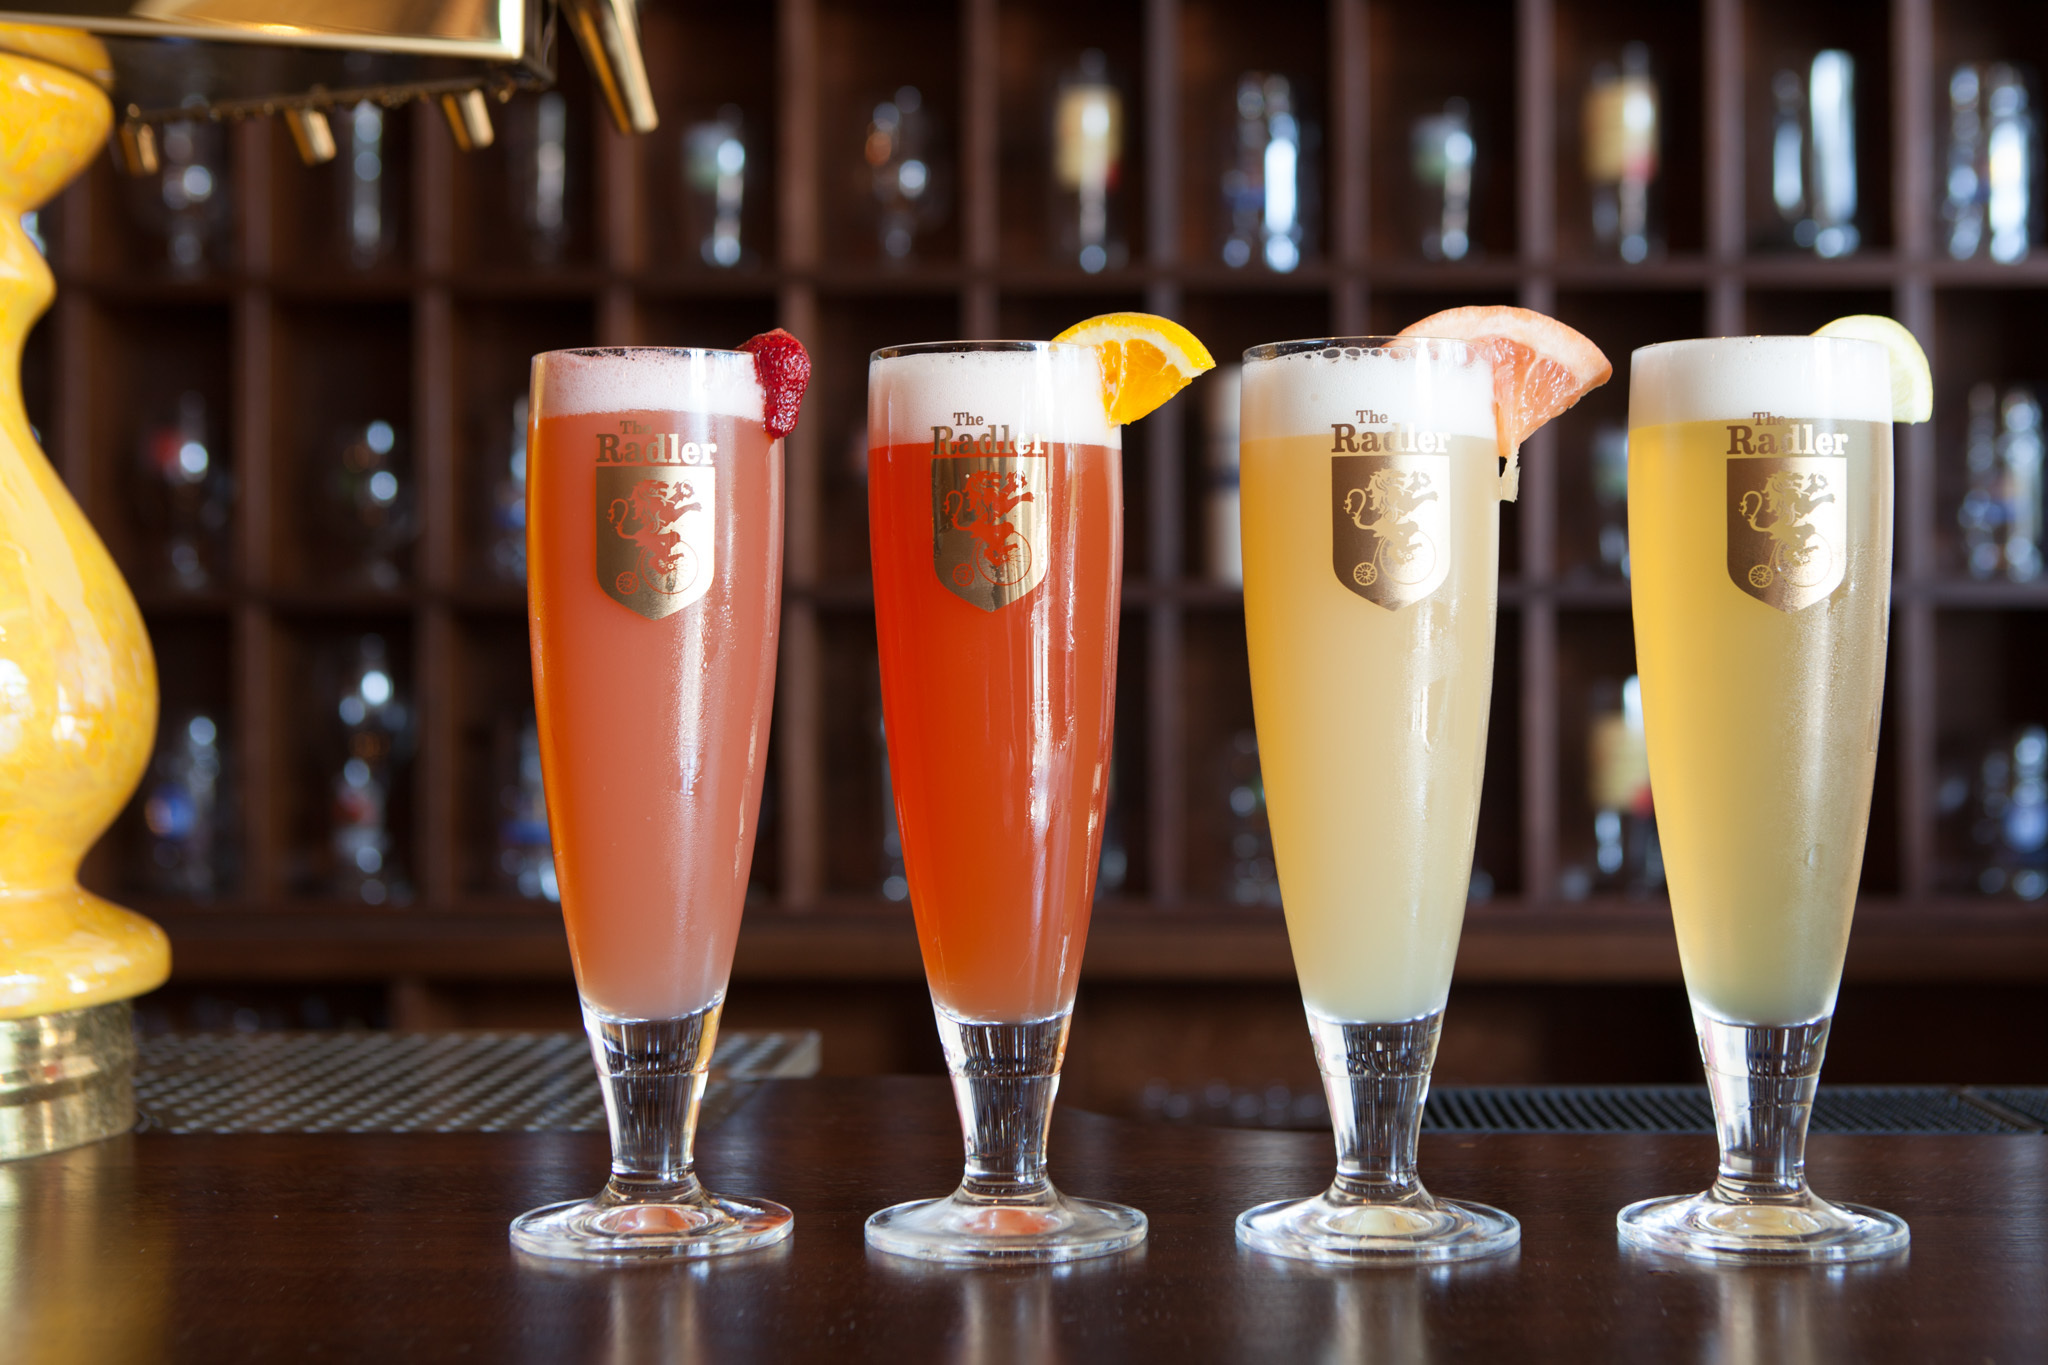 4 radler flavors from The Radler